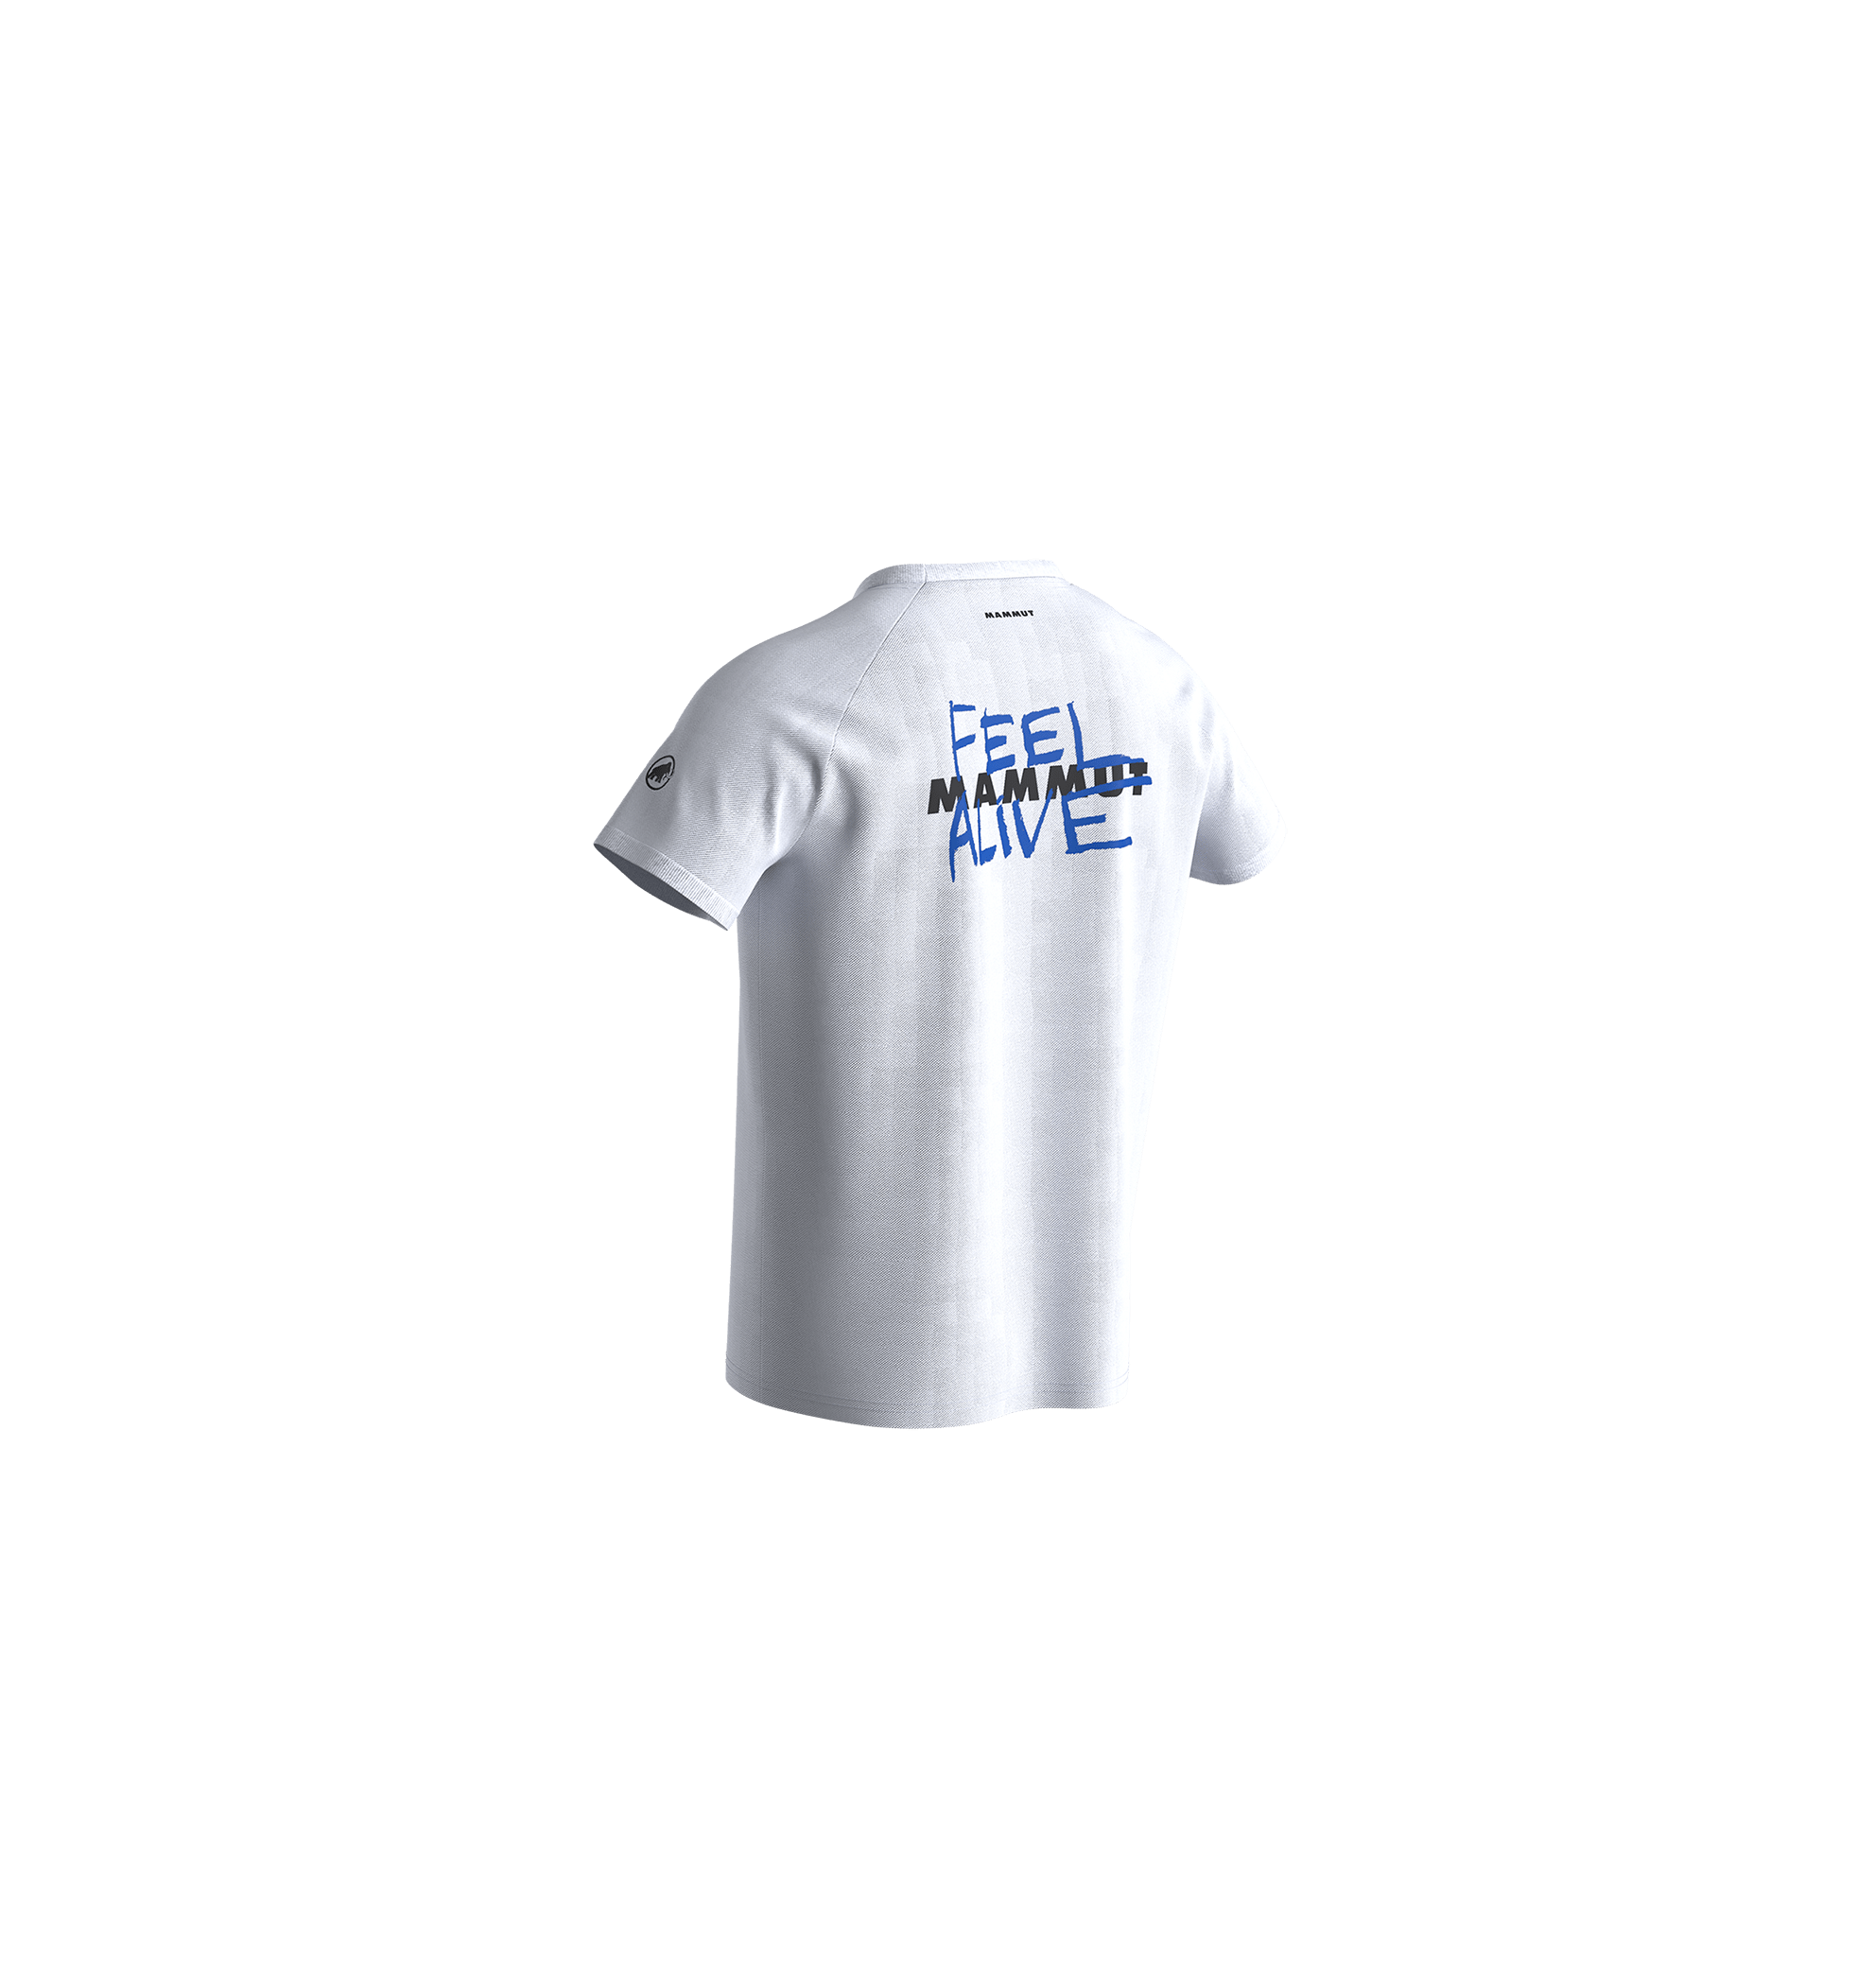 The Coolest Climbing T